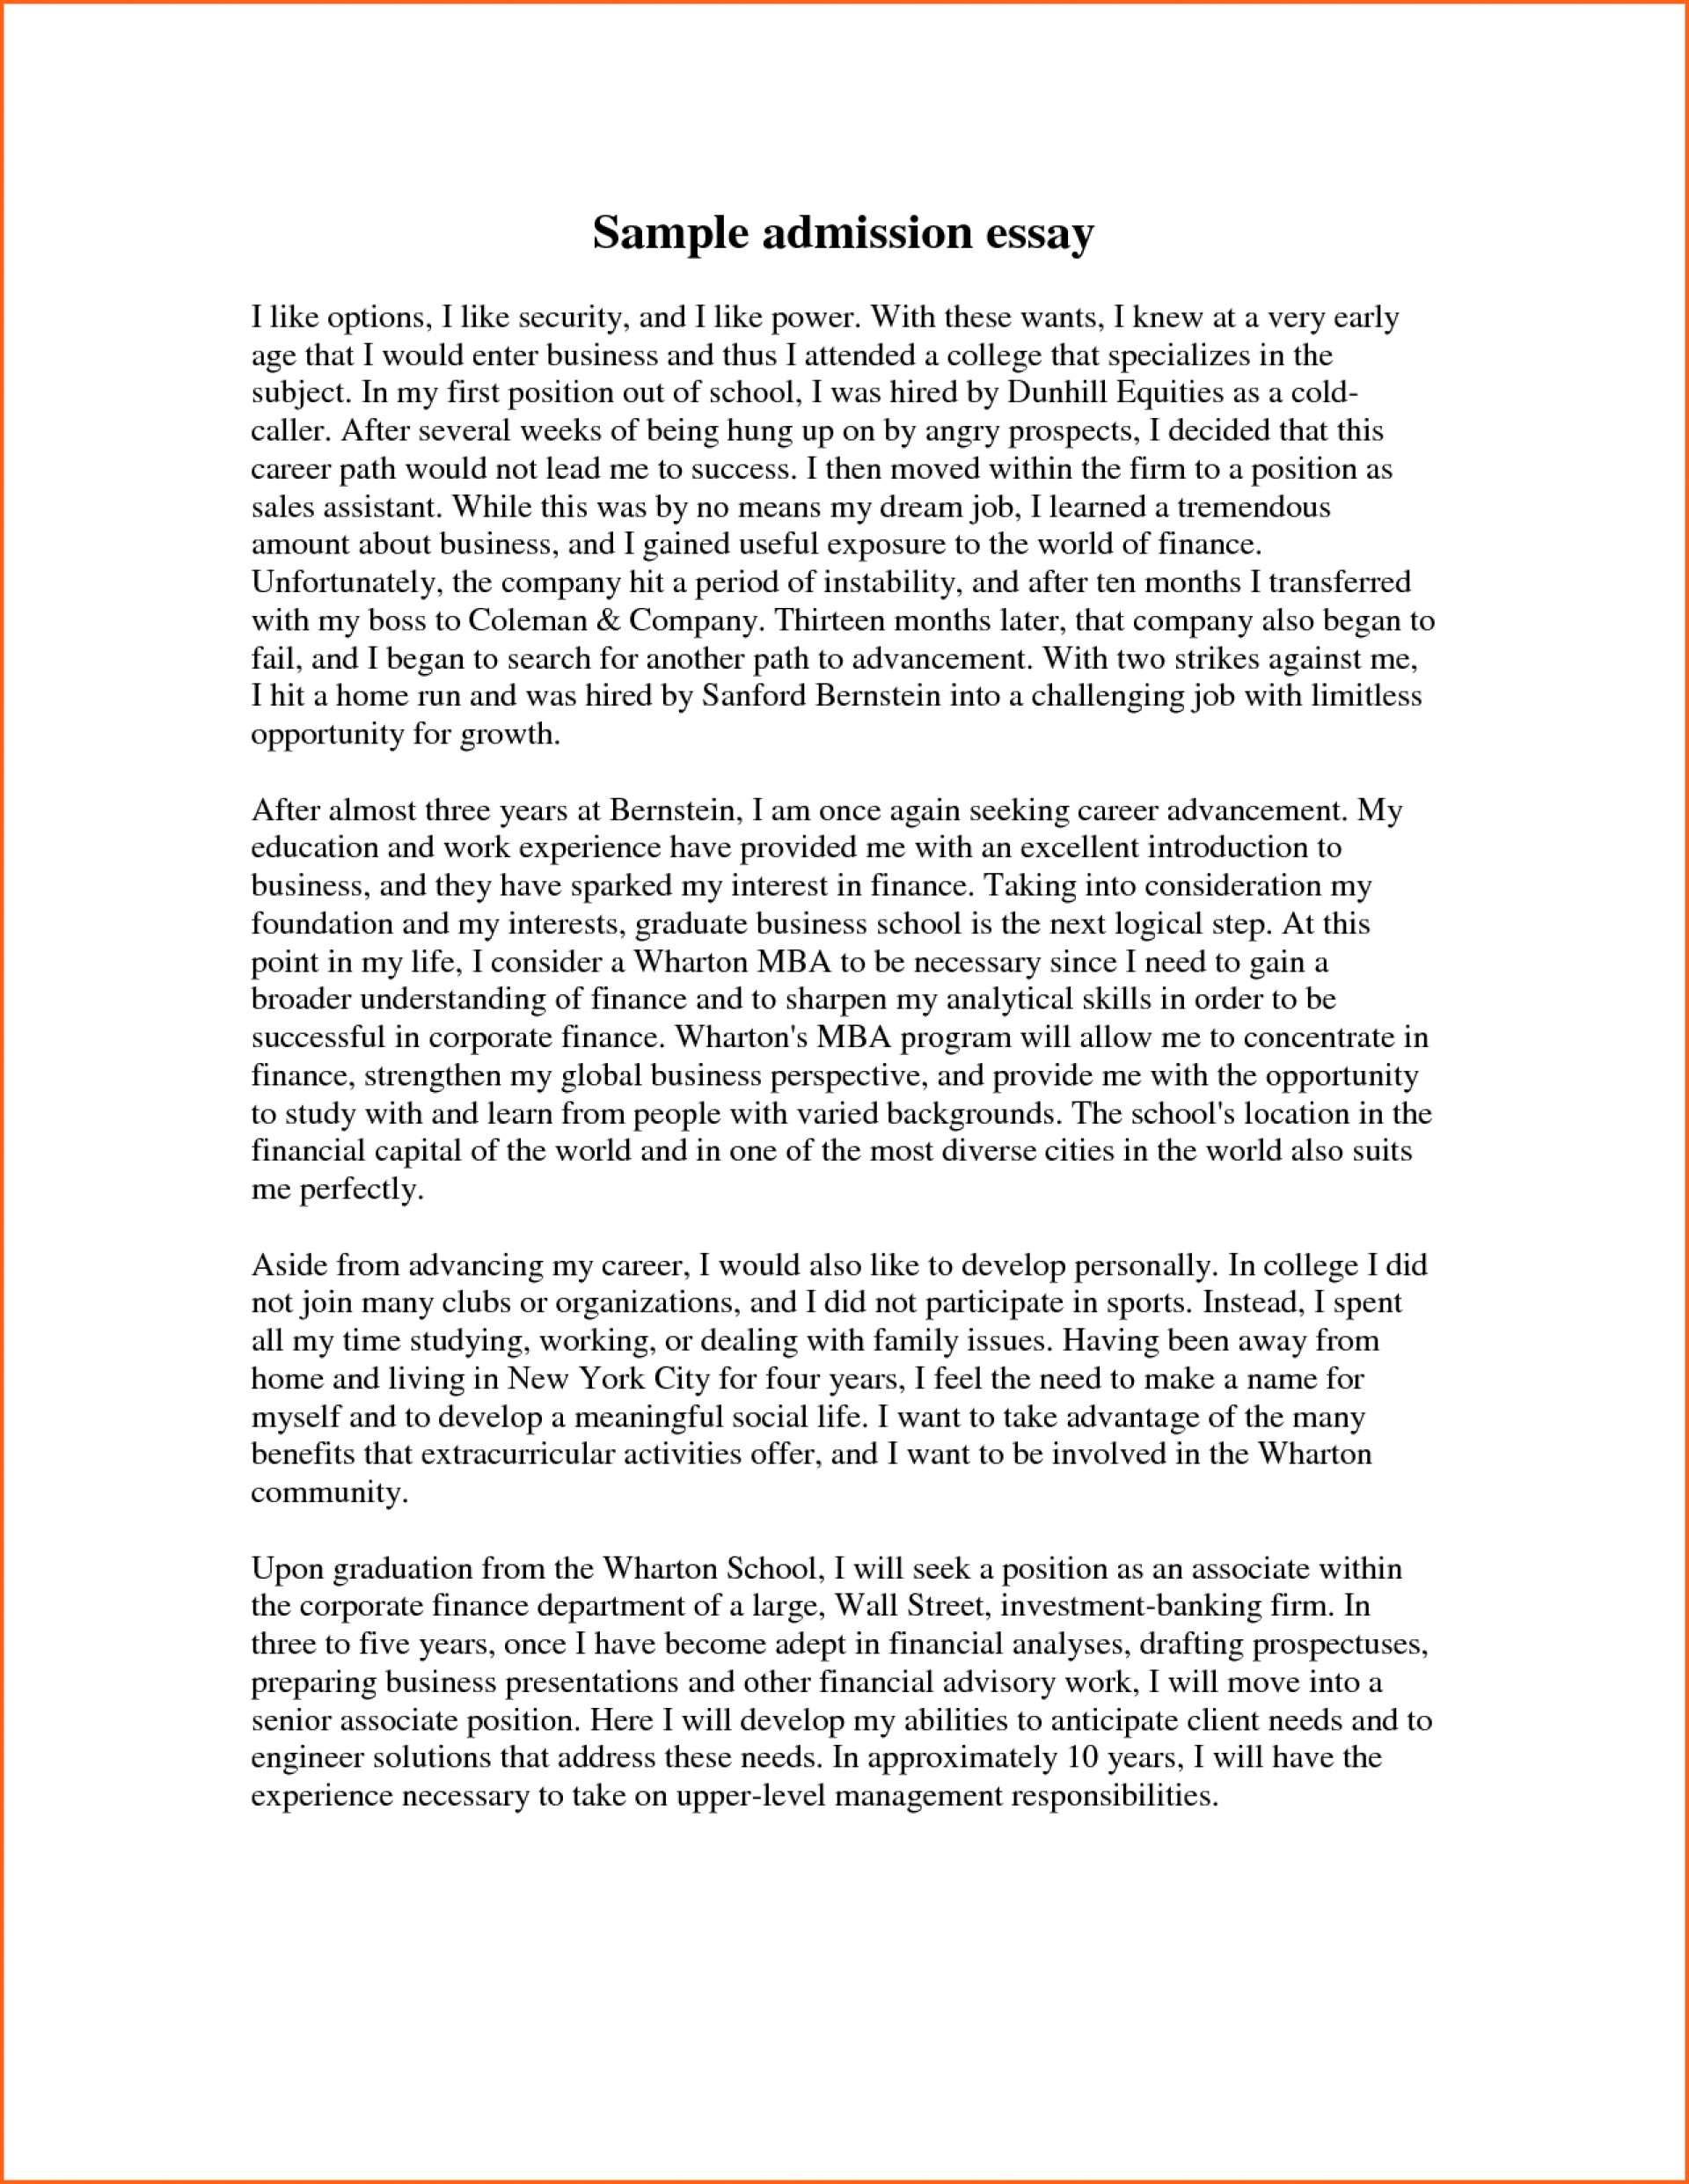 012 Essay Example College Application Examples Excellent Samples Ielts Pdf For High School Students 1920